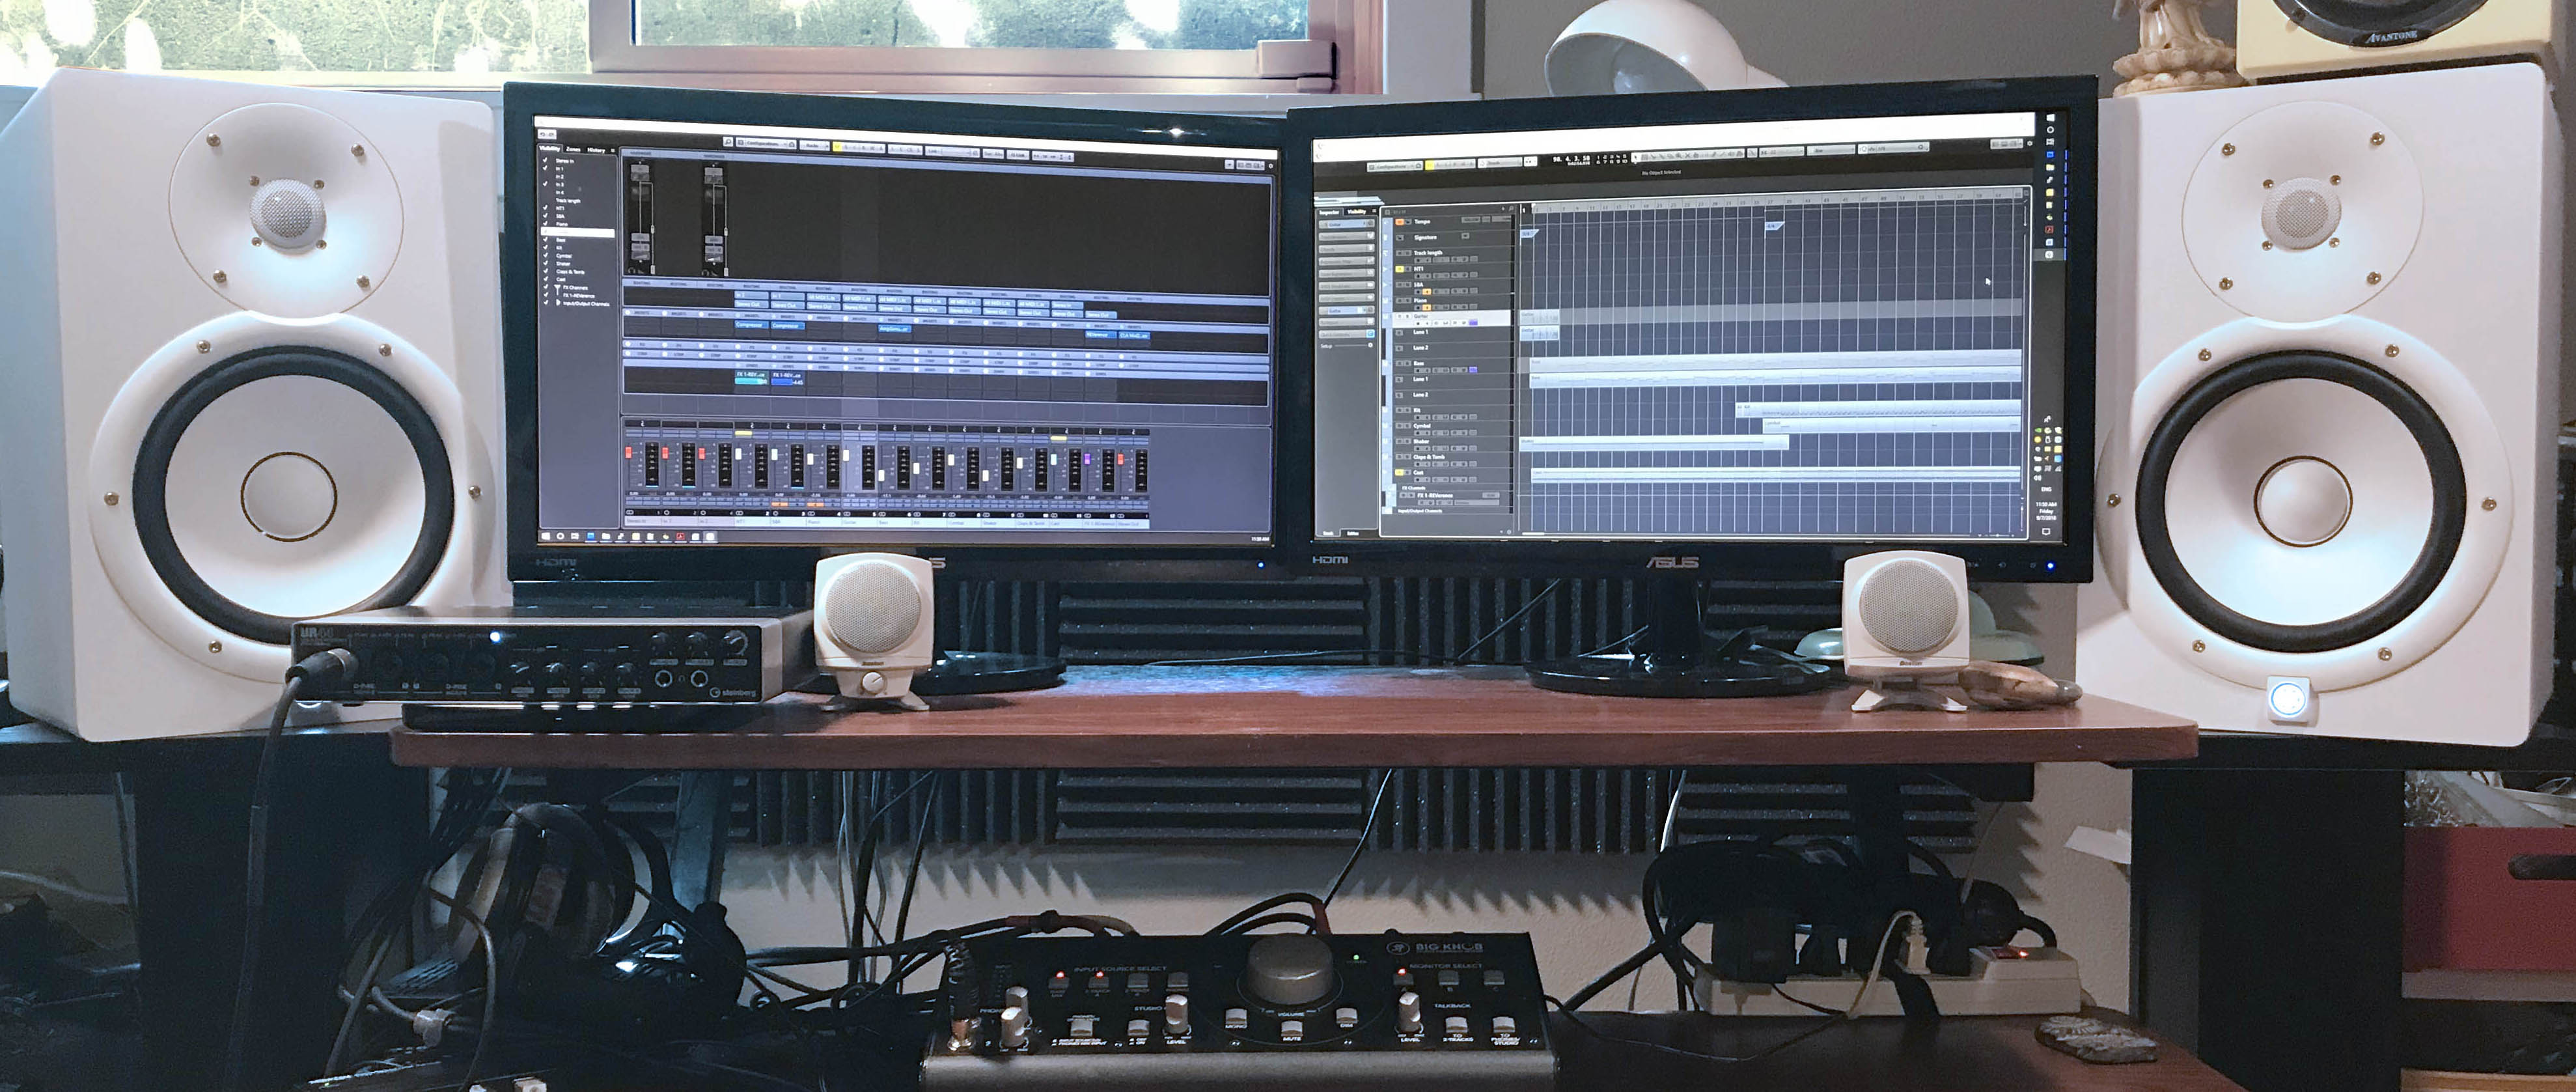 Digital audio workstation running Cubase